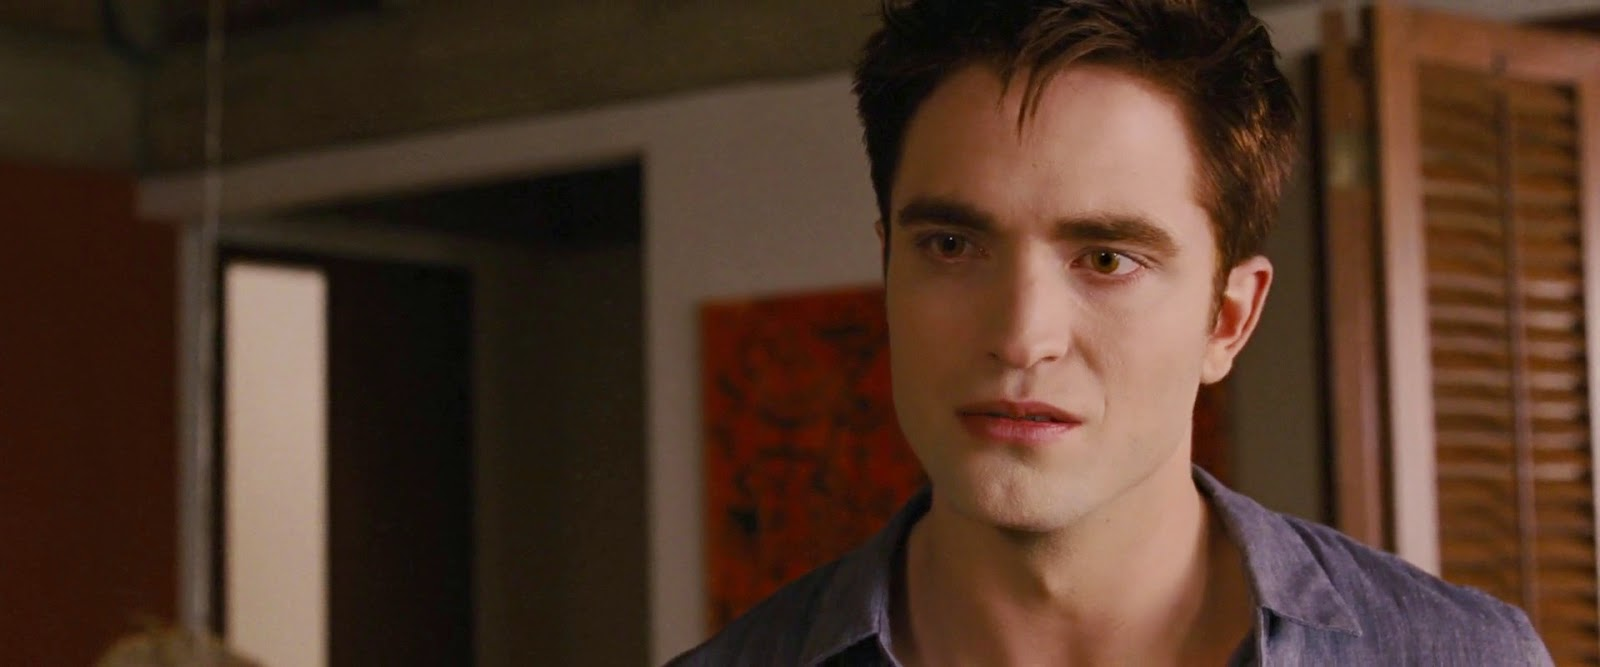 The Twilight Saga - Breaking Dawn Part 1 (2011) S4 s The Twilight Saga - Breaking Dawn Part 1 (2011)